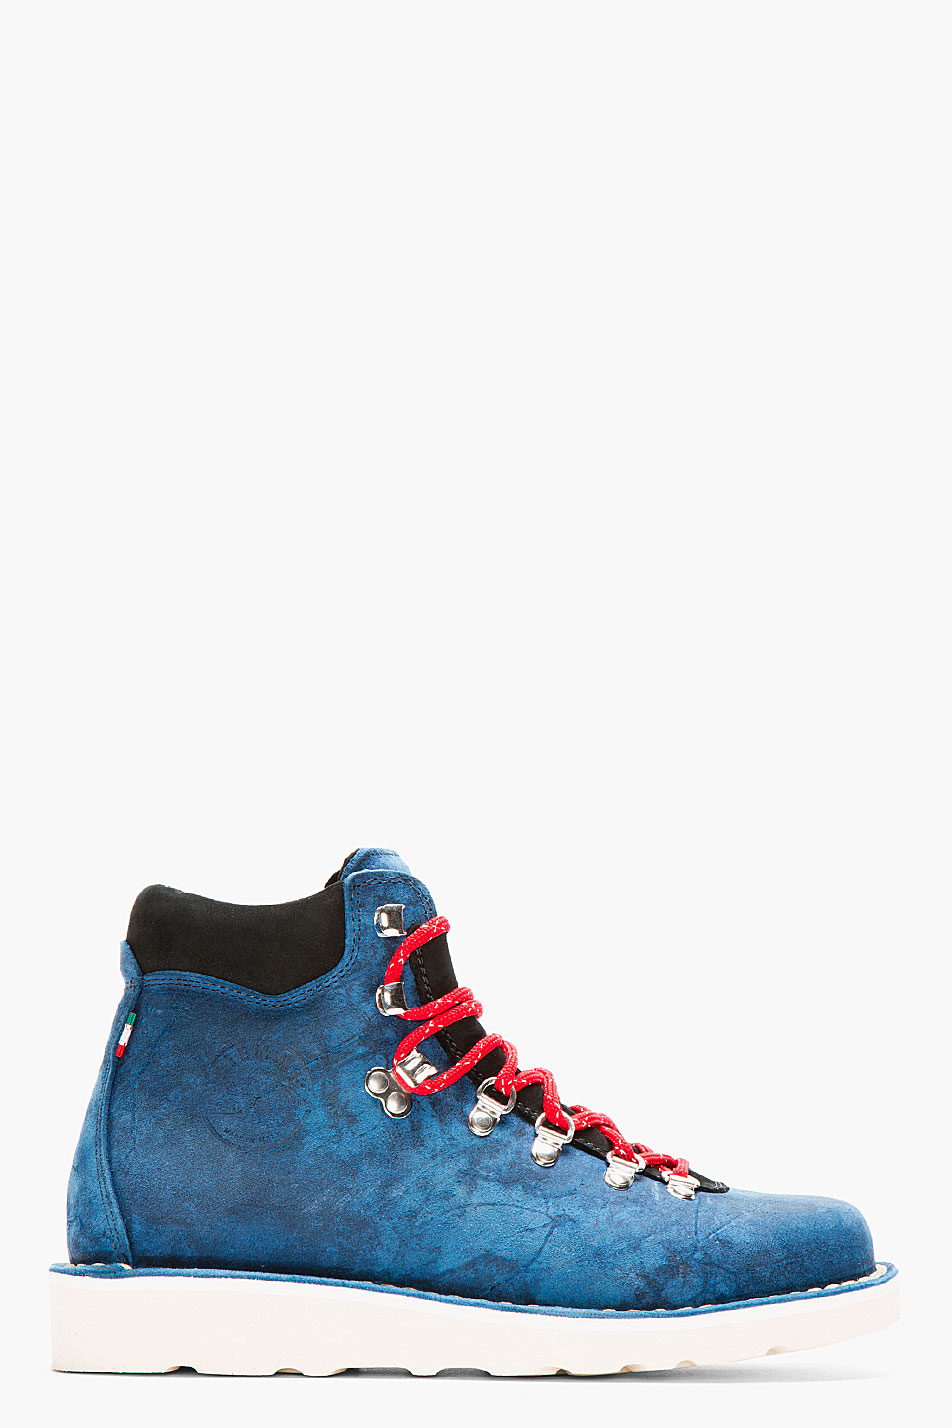 Distressed Navy Suede Hiking Boots Side View